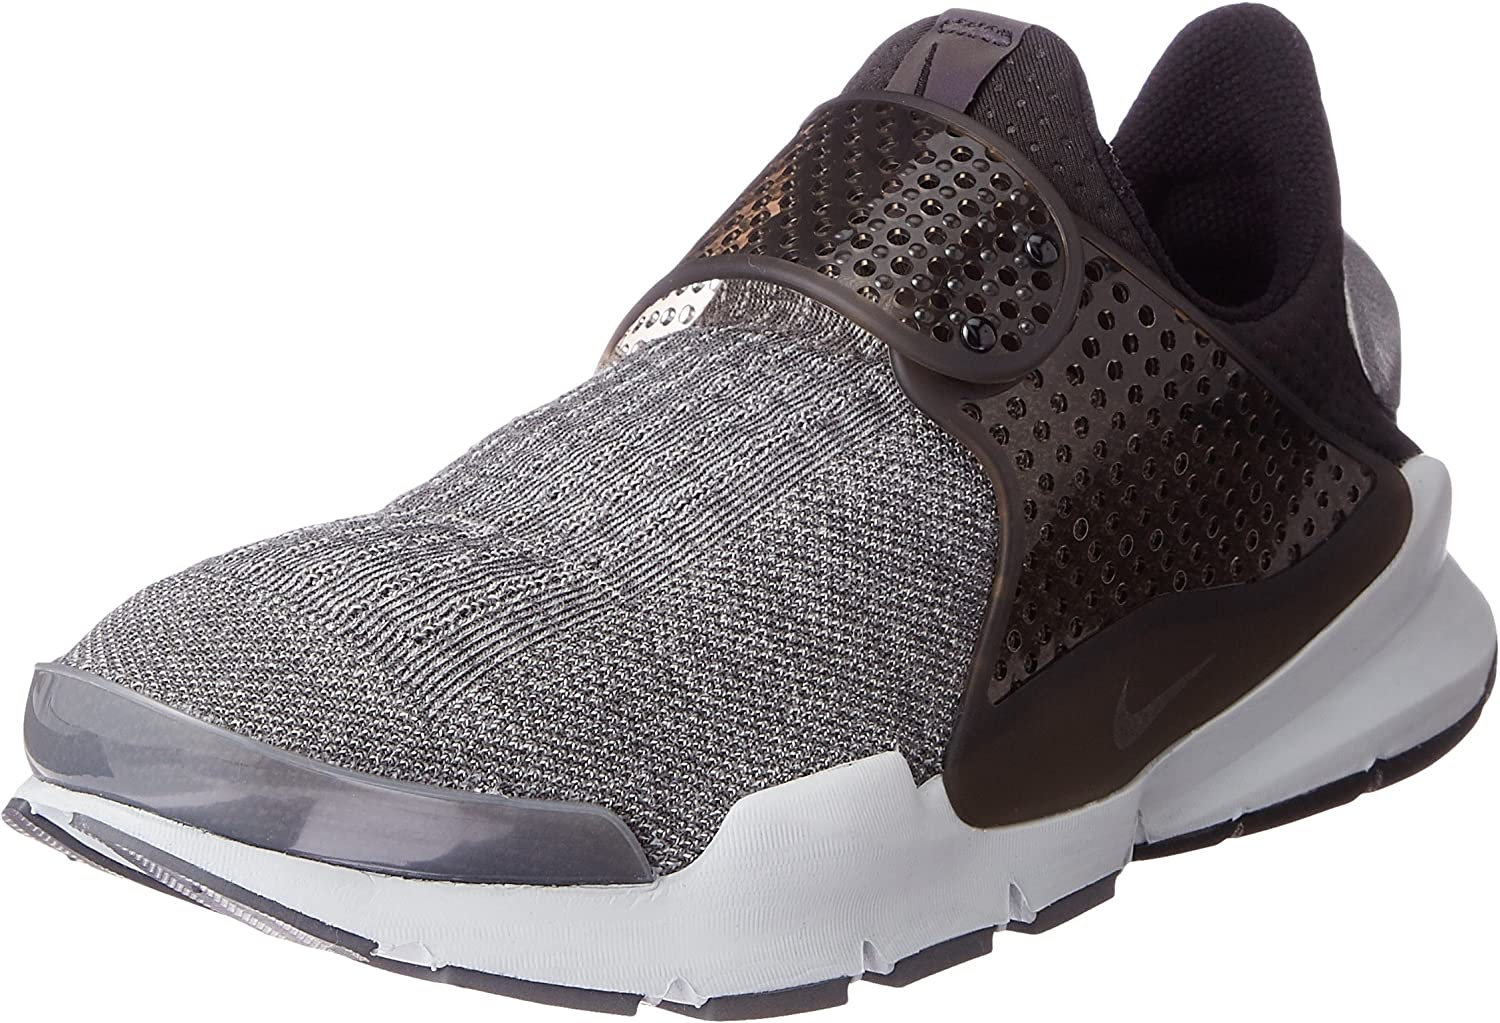 Nike Men's Sock Dart SE Premium Grey Textile Running shoes 9